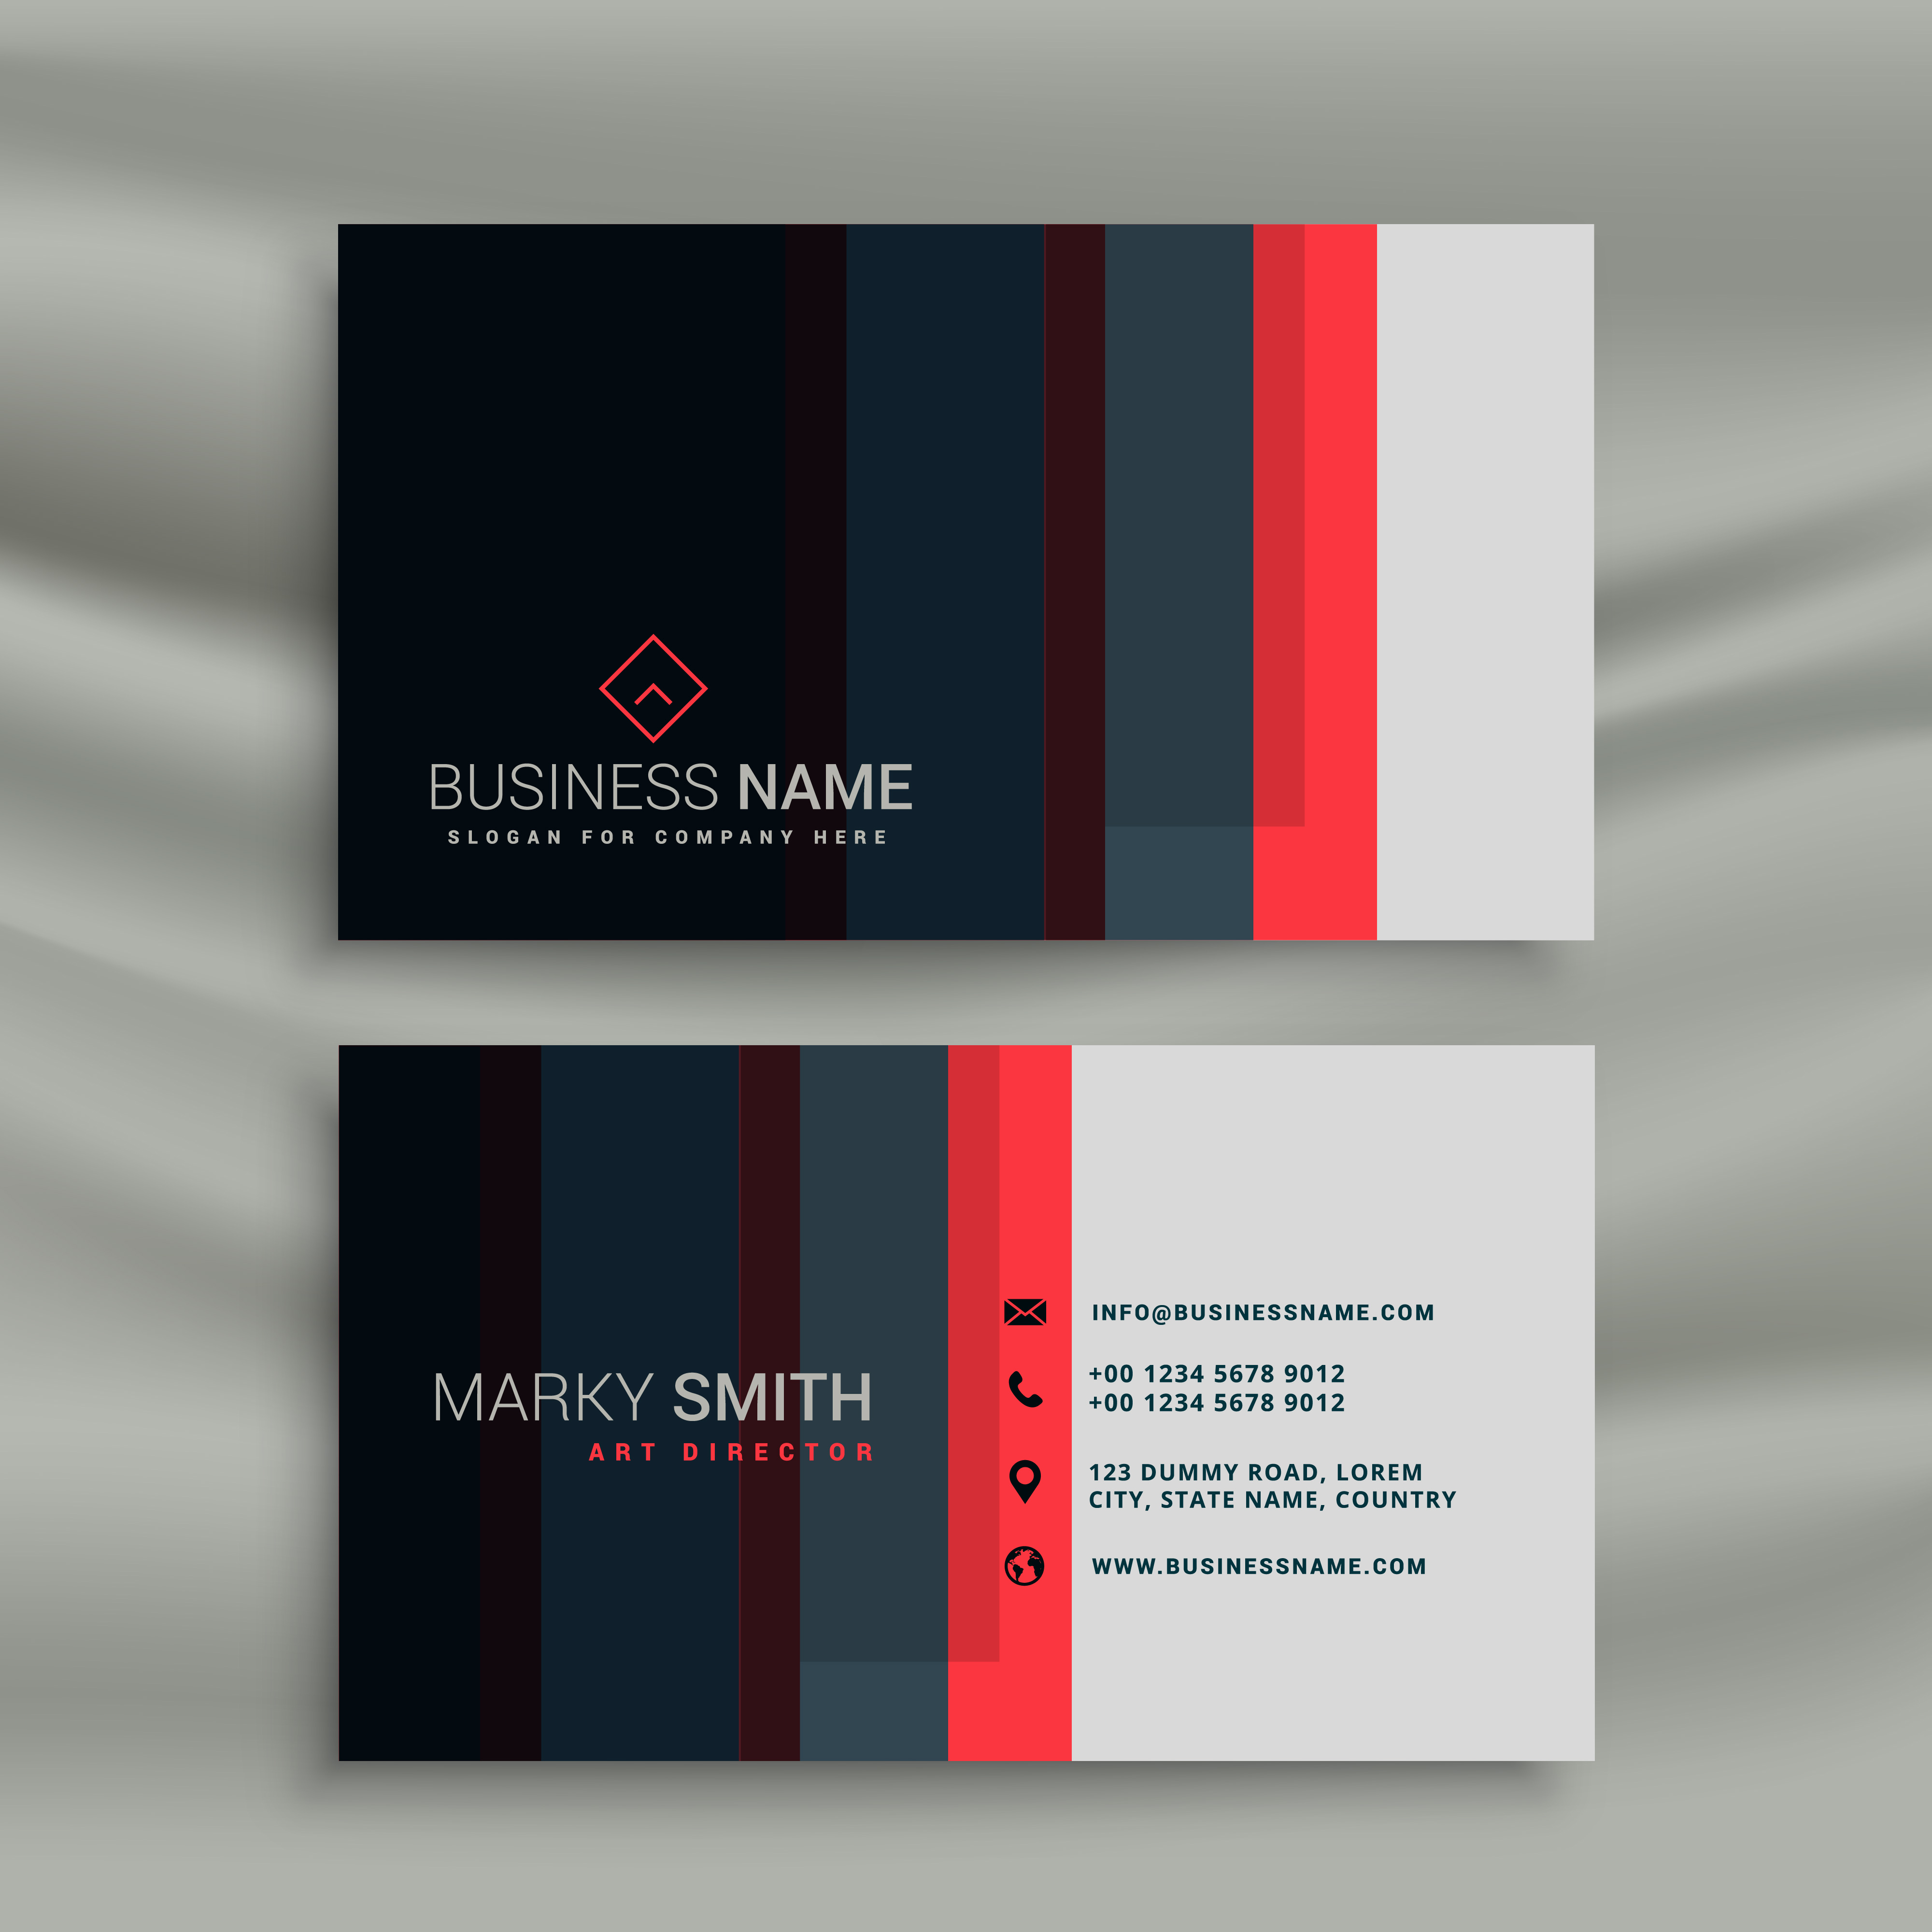 Blue Corporate Stationary Pack By Betty Design: Modern Creative Business Card Identity Template With Red